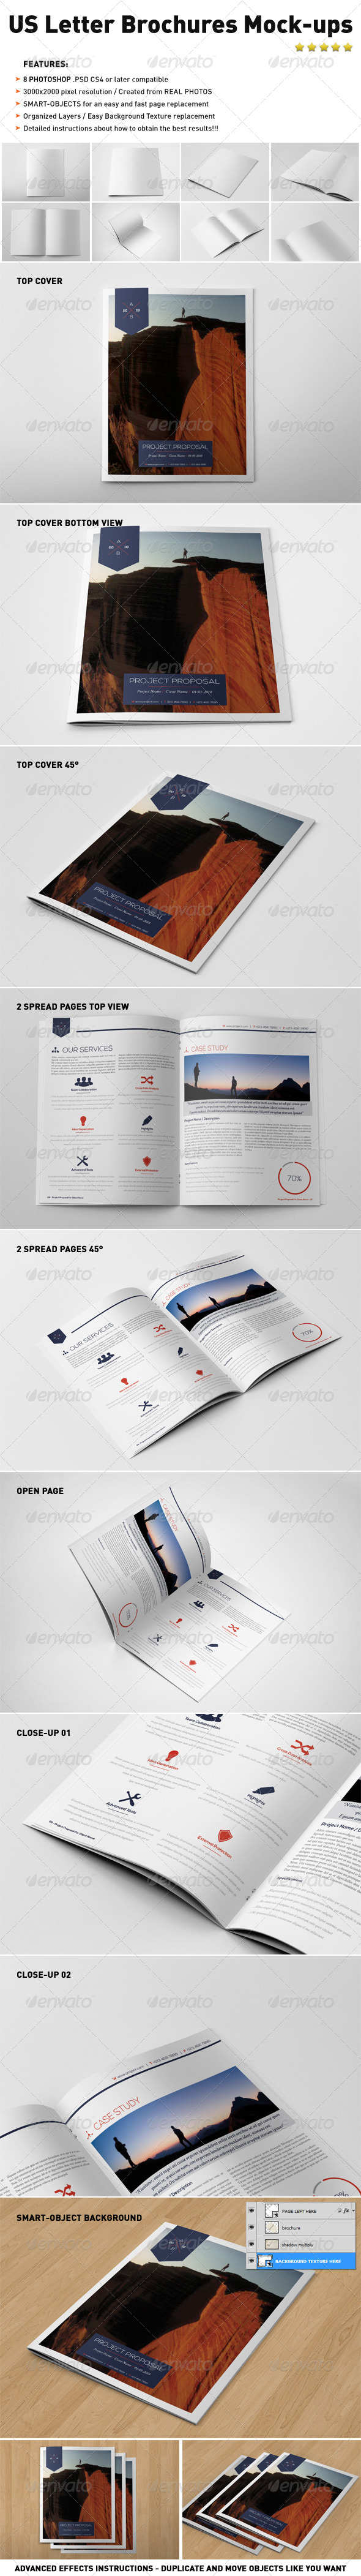 GraphicRiver Photorealistic US Letter Brochure Mock-Ups 4803638